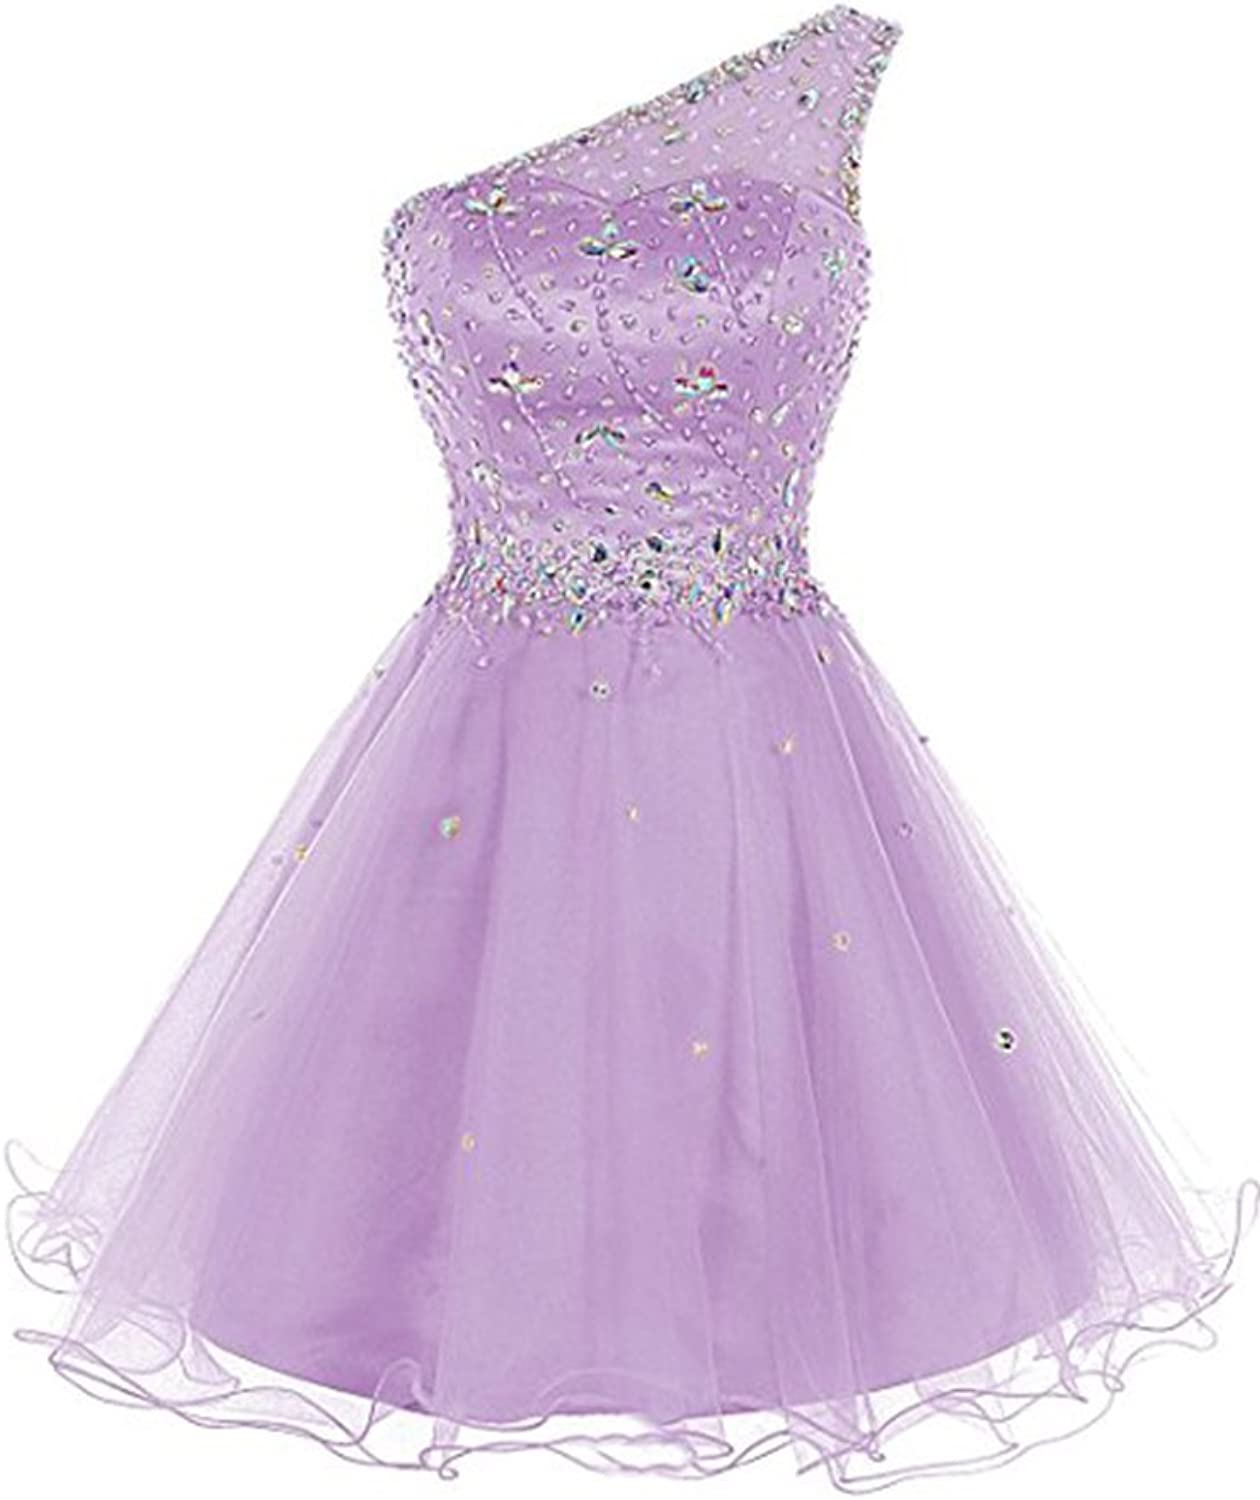 Emmani Womens Short Tulle Homecoming Dress One Shoulder Beaded Cocktail Prom Party